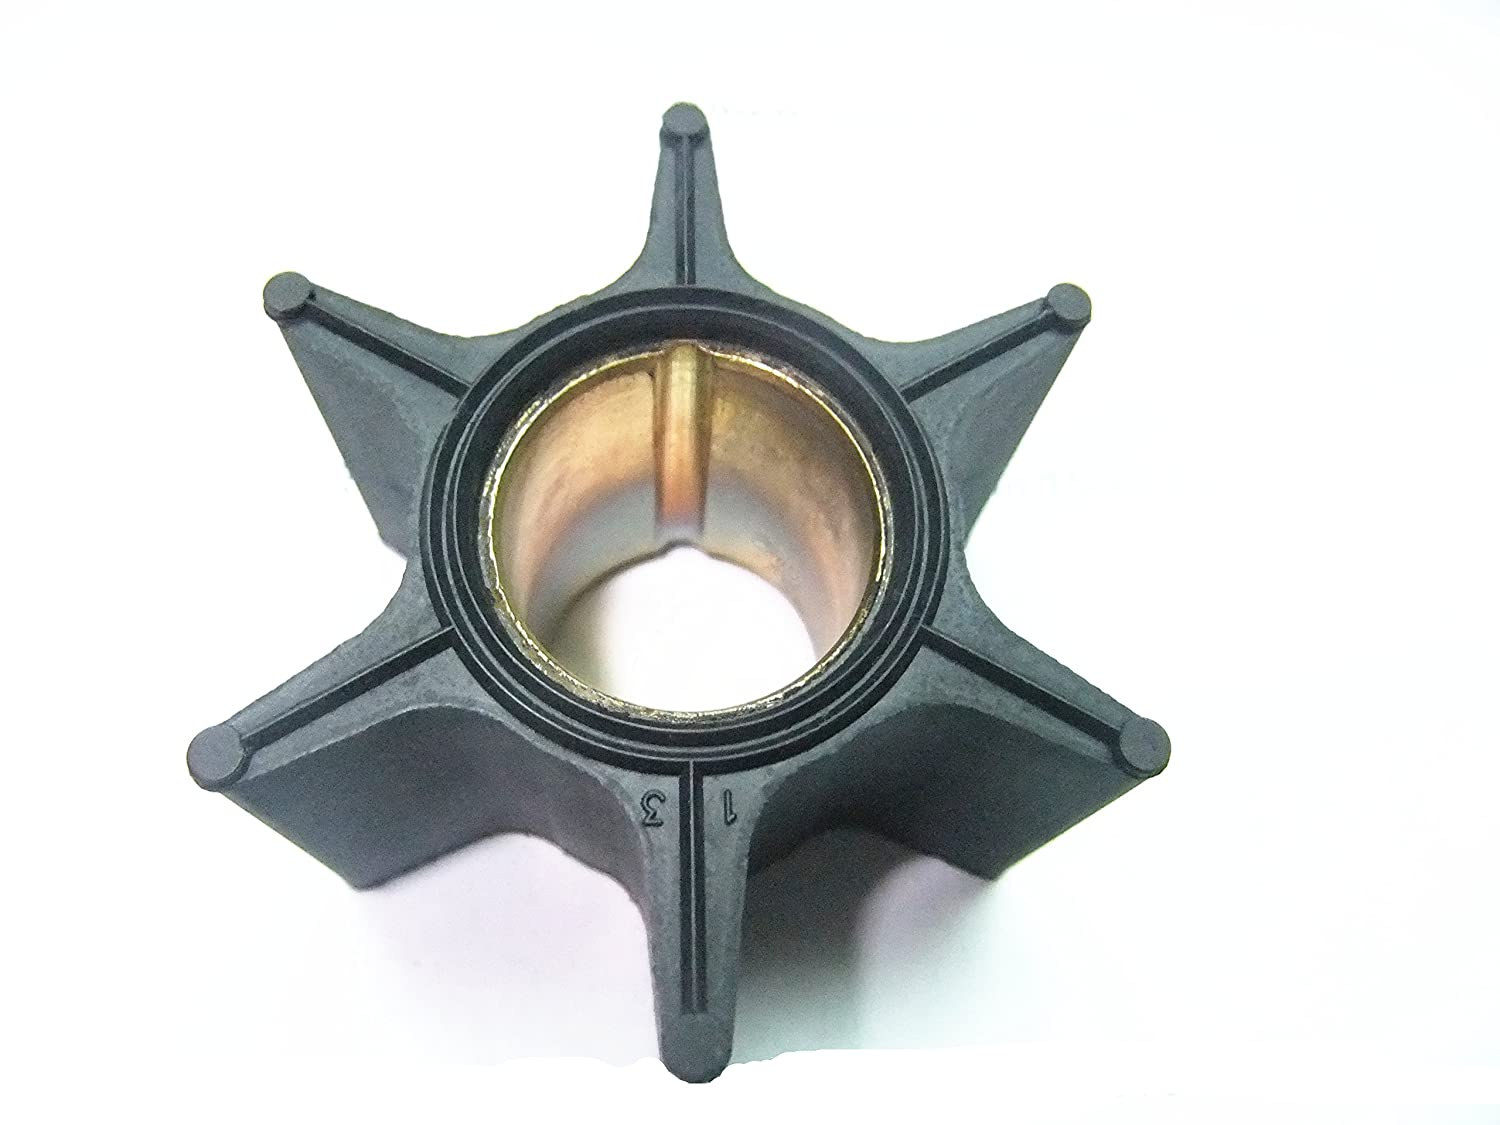 47-89984 47-89984T4 47-80363 1T 47-F694065 47-30221 18-3017 Boat Engine Impeller for Mercury Mercruiser 75-225hp outboard motors